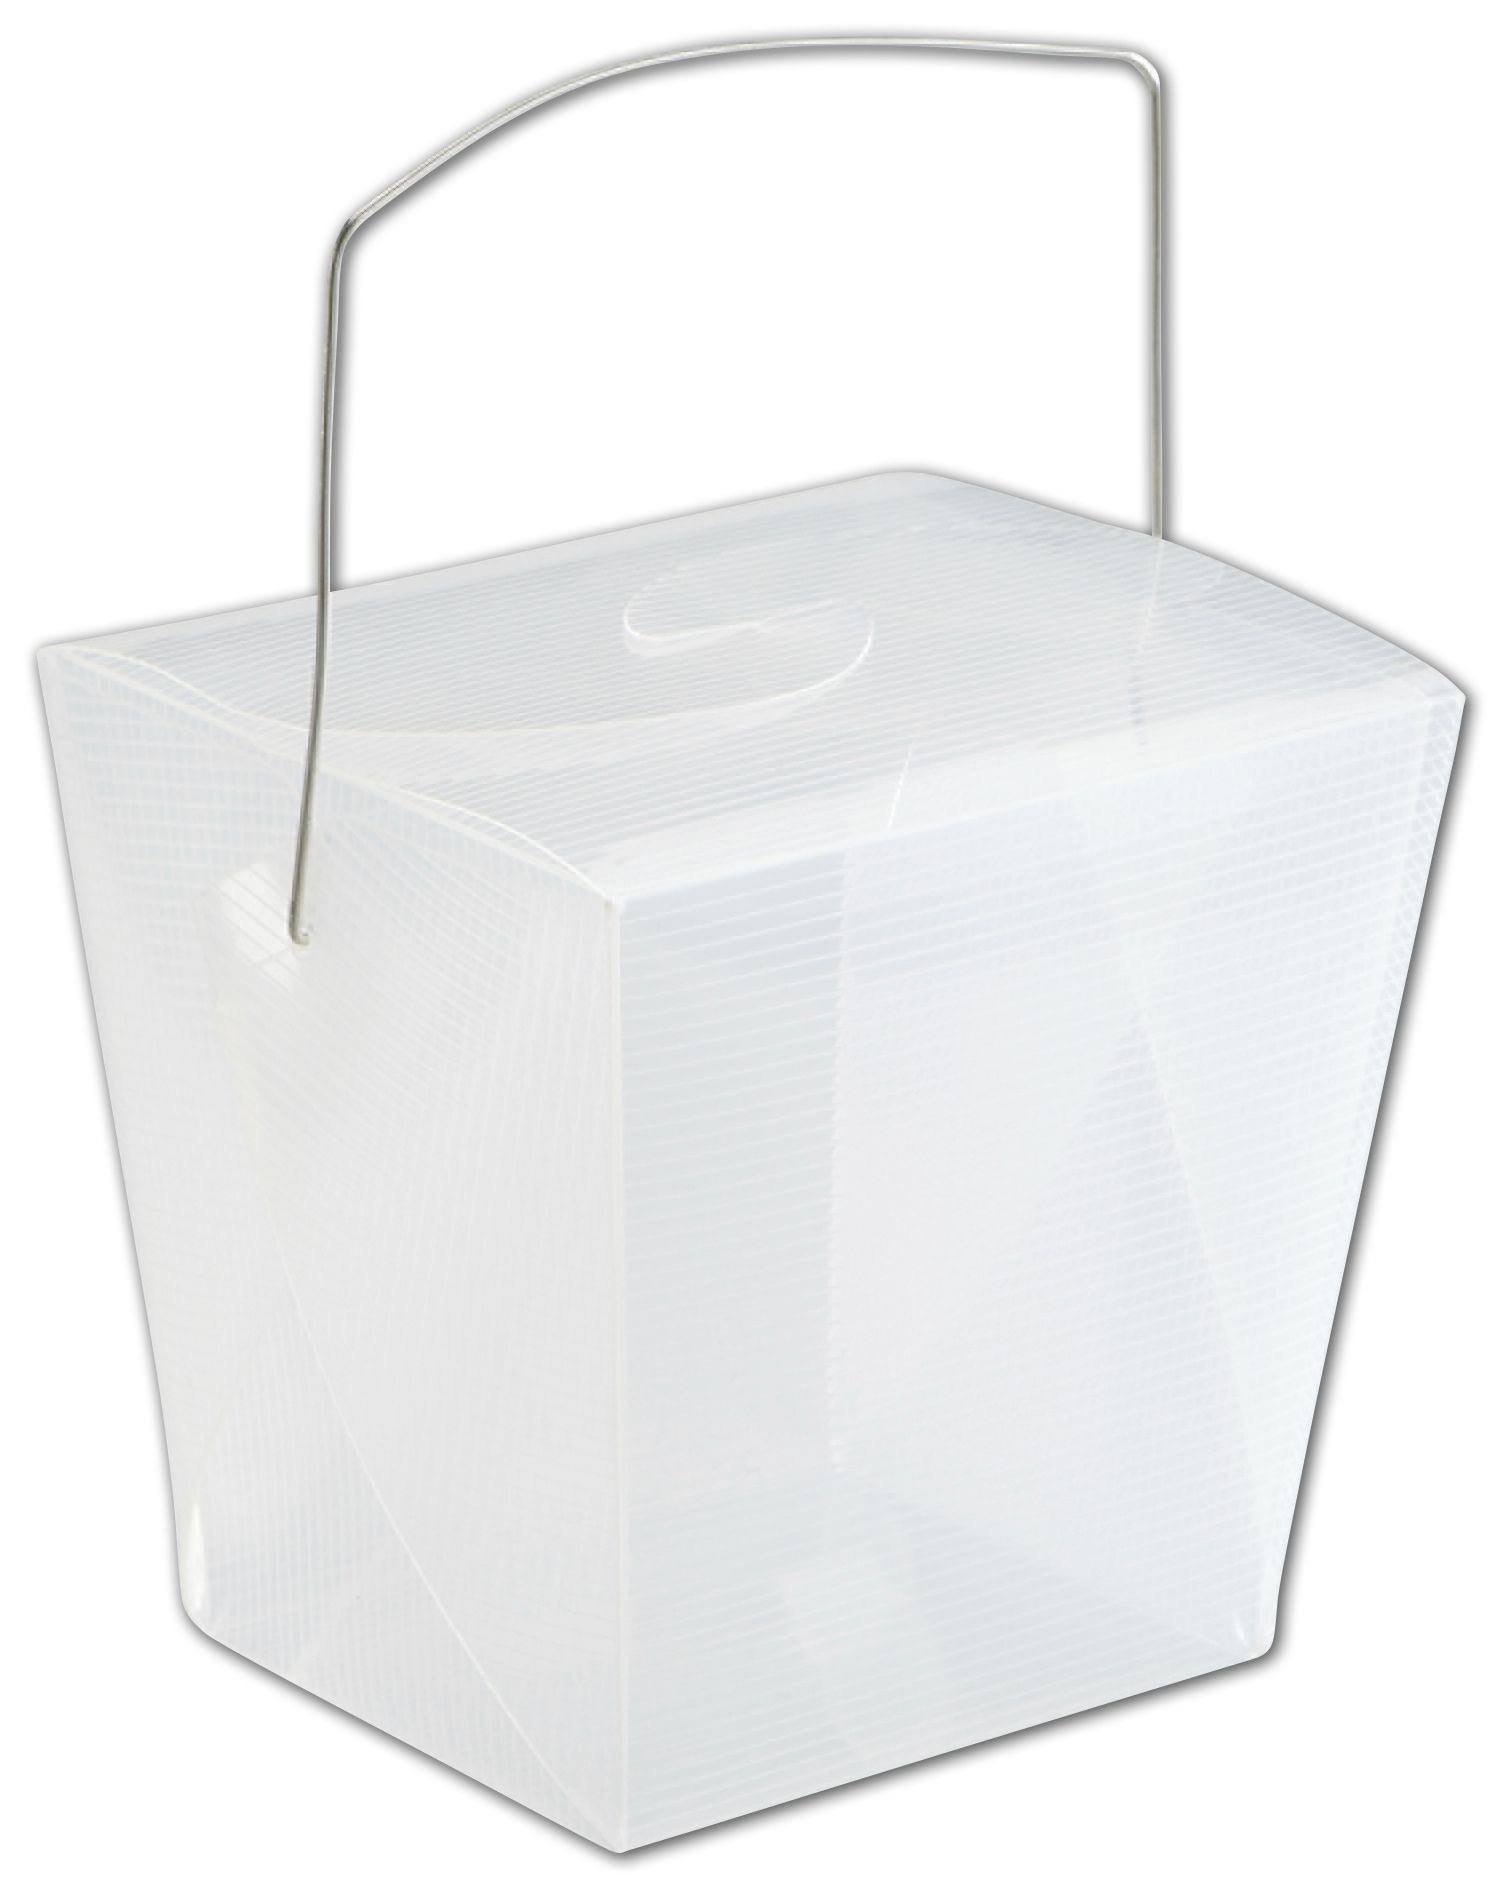 """Clear Grooved Event Boxes, 4 x 3 1/2 x 4"""" (12 Boxes) - BOWS-1152-1"""